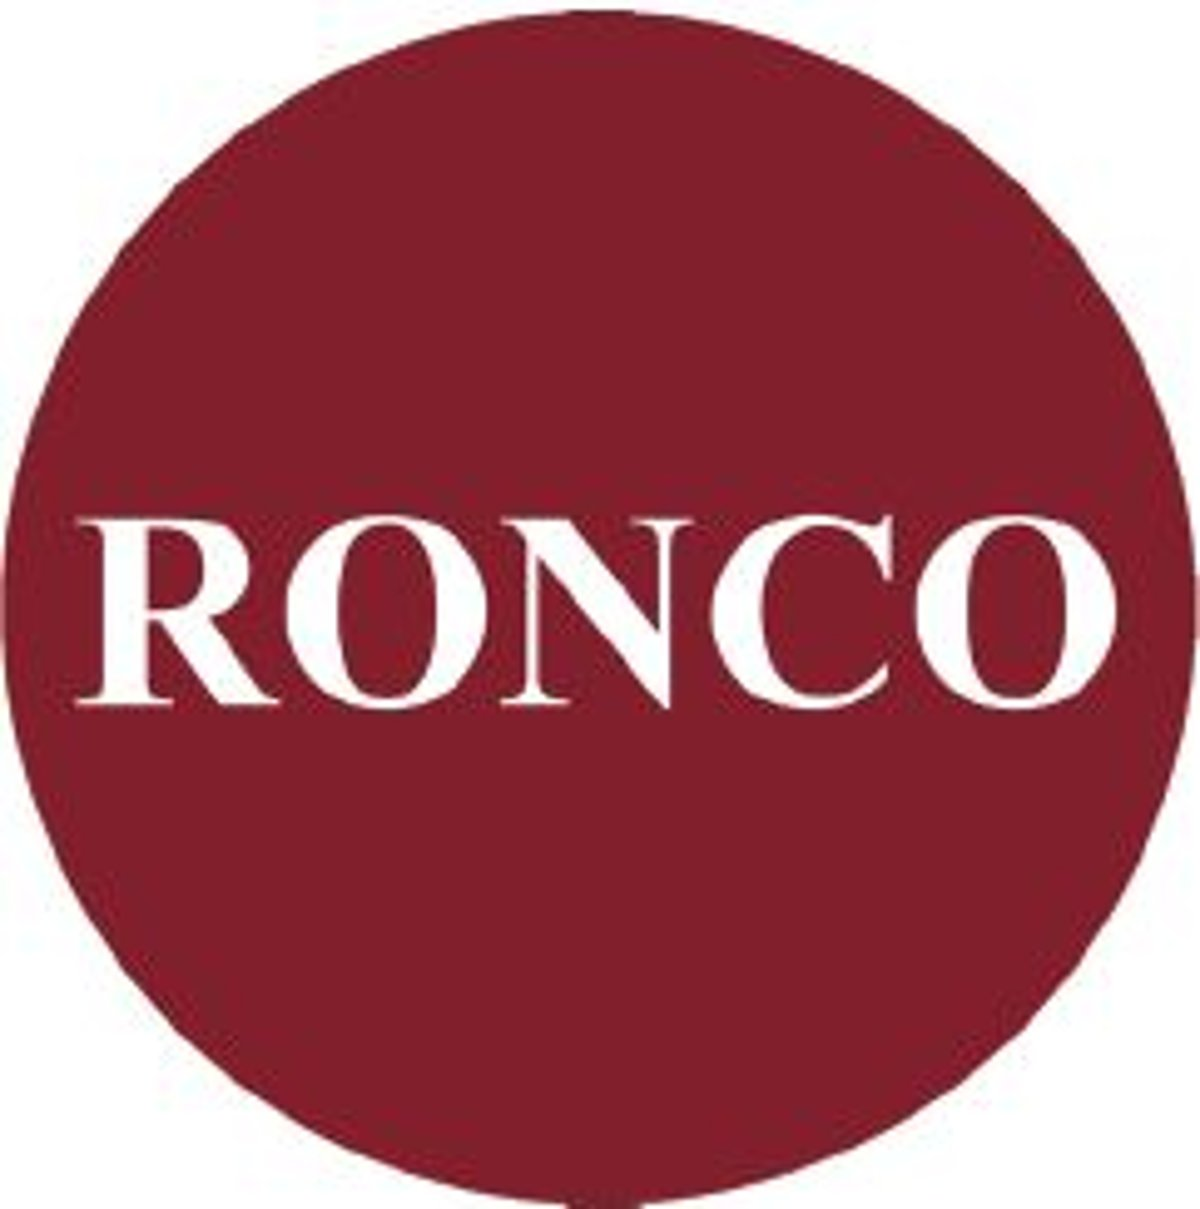 Ronco Consulting Corporation